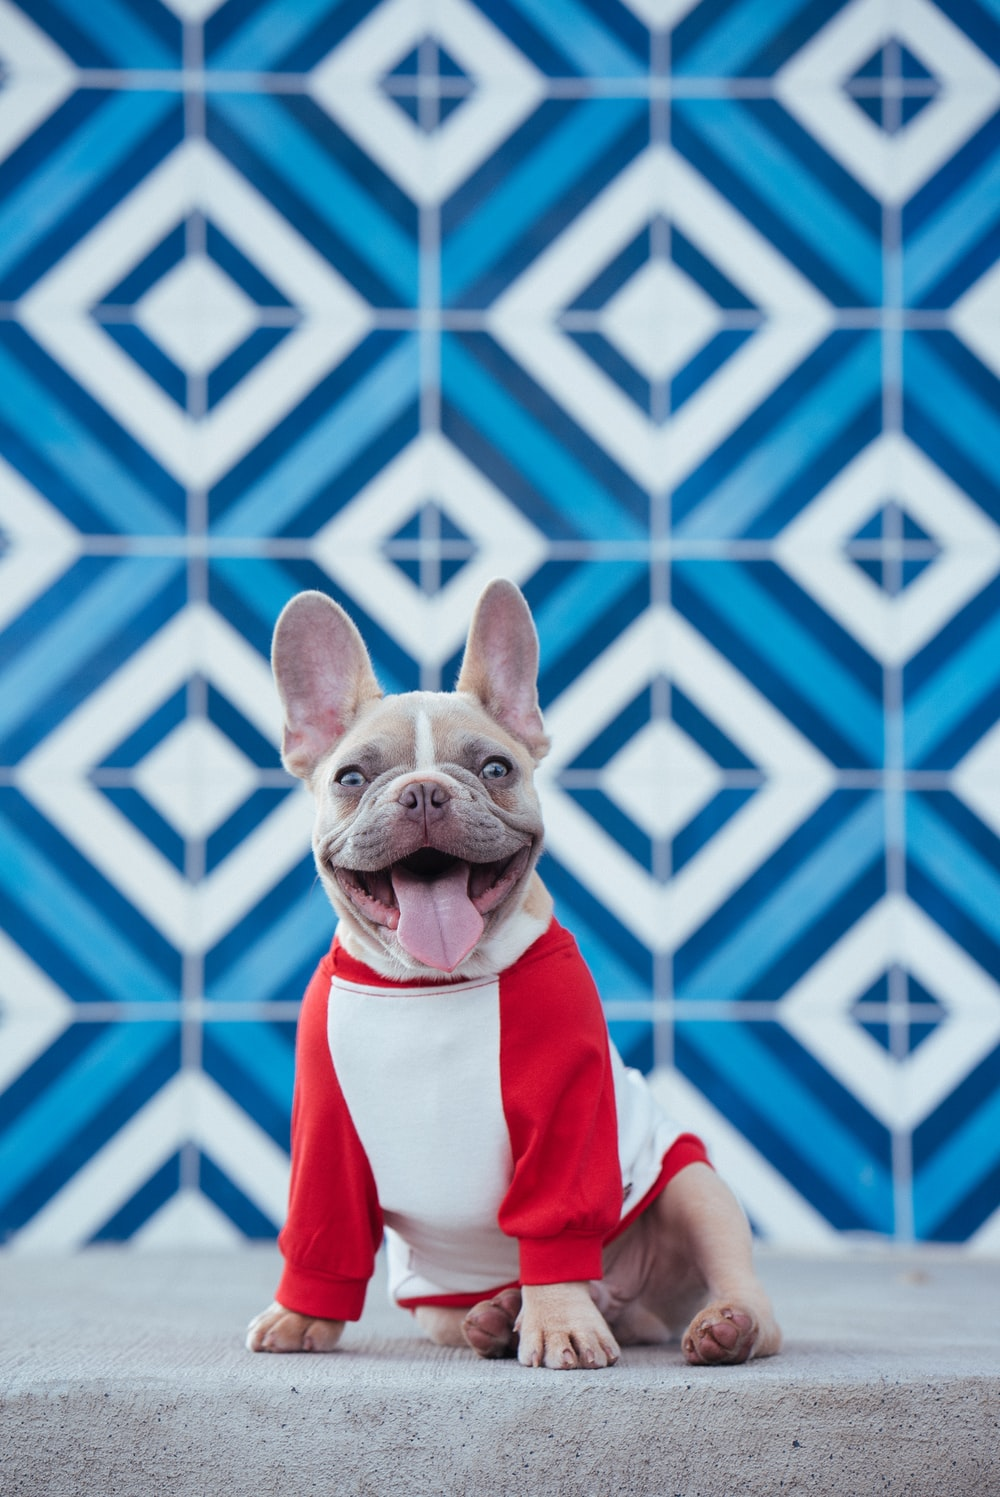 brown short coated dog wearing red and white santa costume